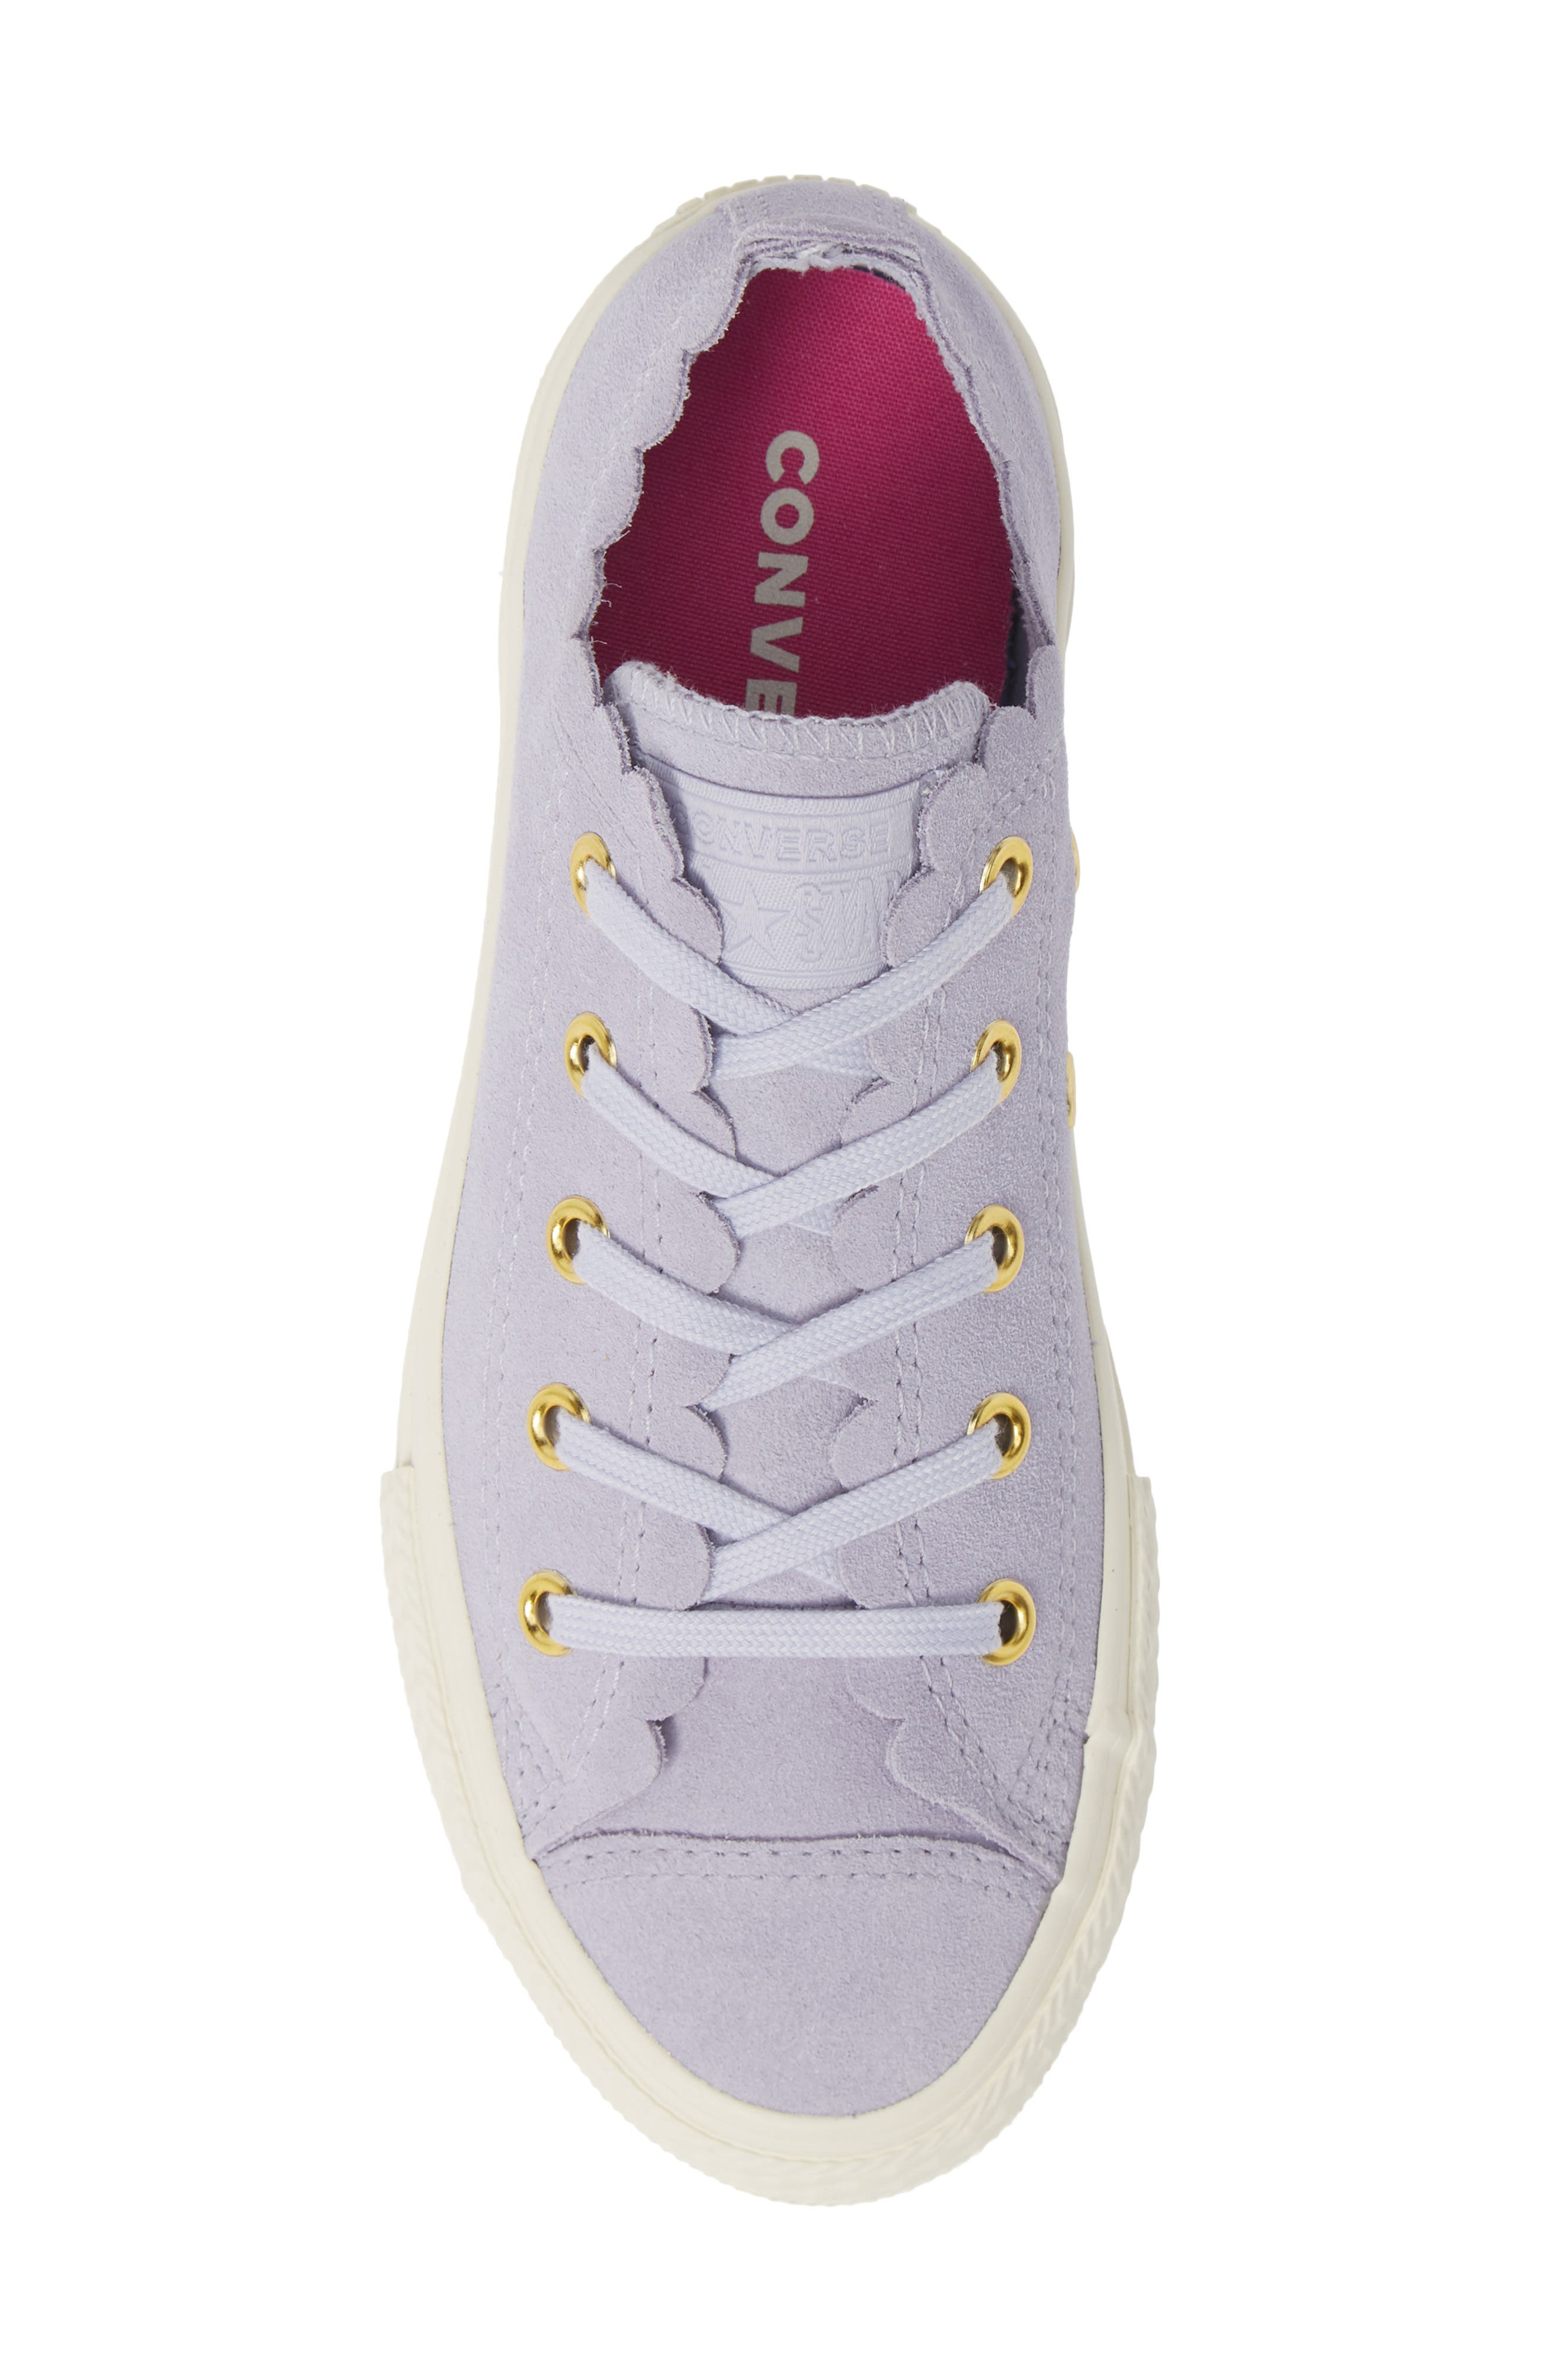 CONVERSE, Chuck Taylor<sup>®</sup> All Star<sup>®</sup> Ox Scallop Sneaker, Alternate thumbnail 5, color, OXYGEN PURPLE/ OXYGEN PURPLE